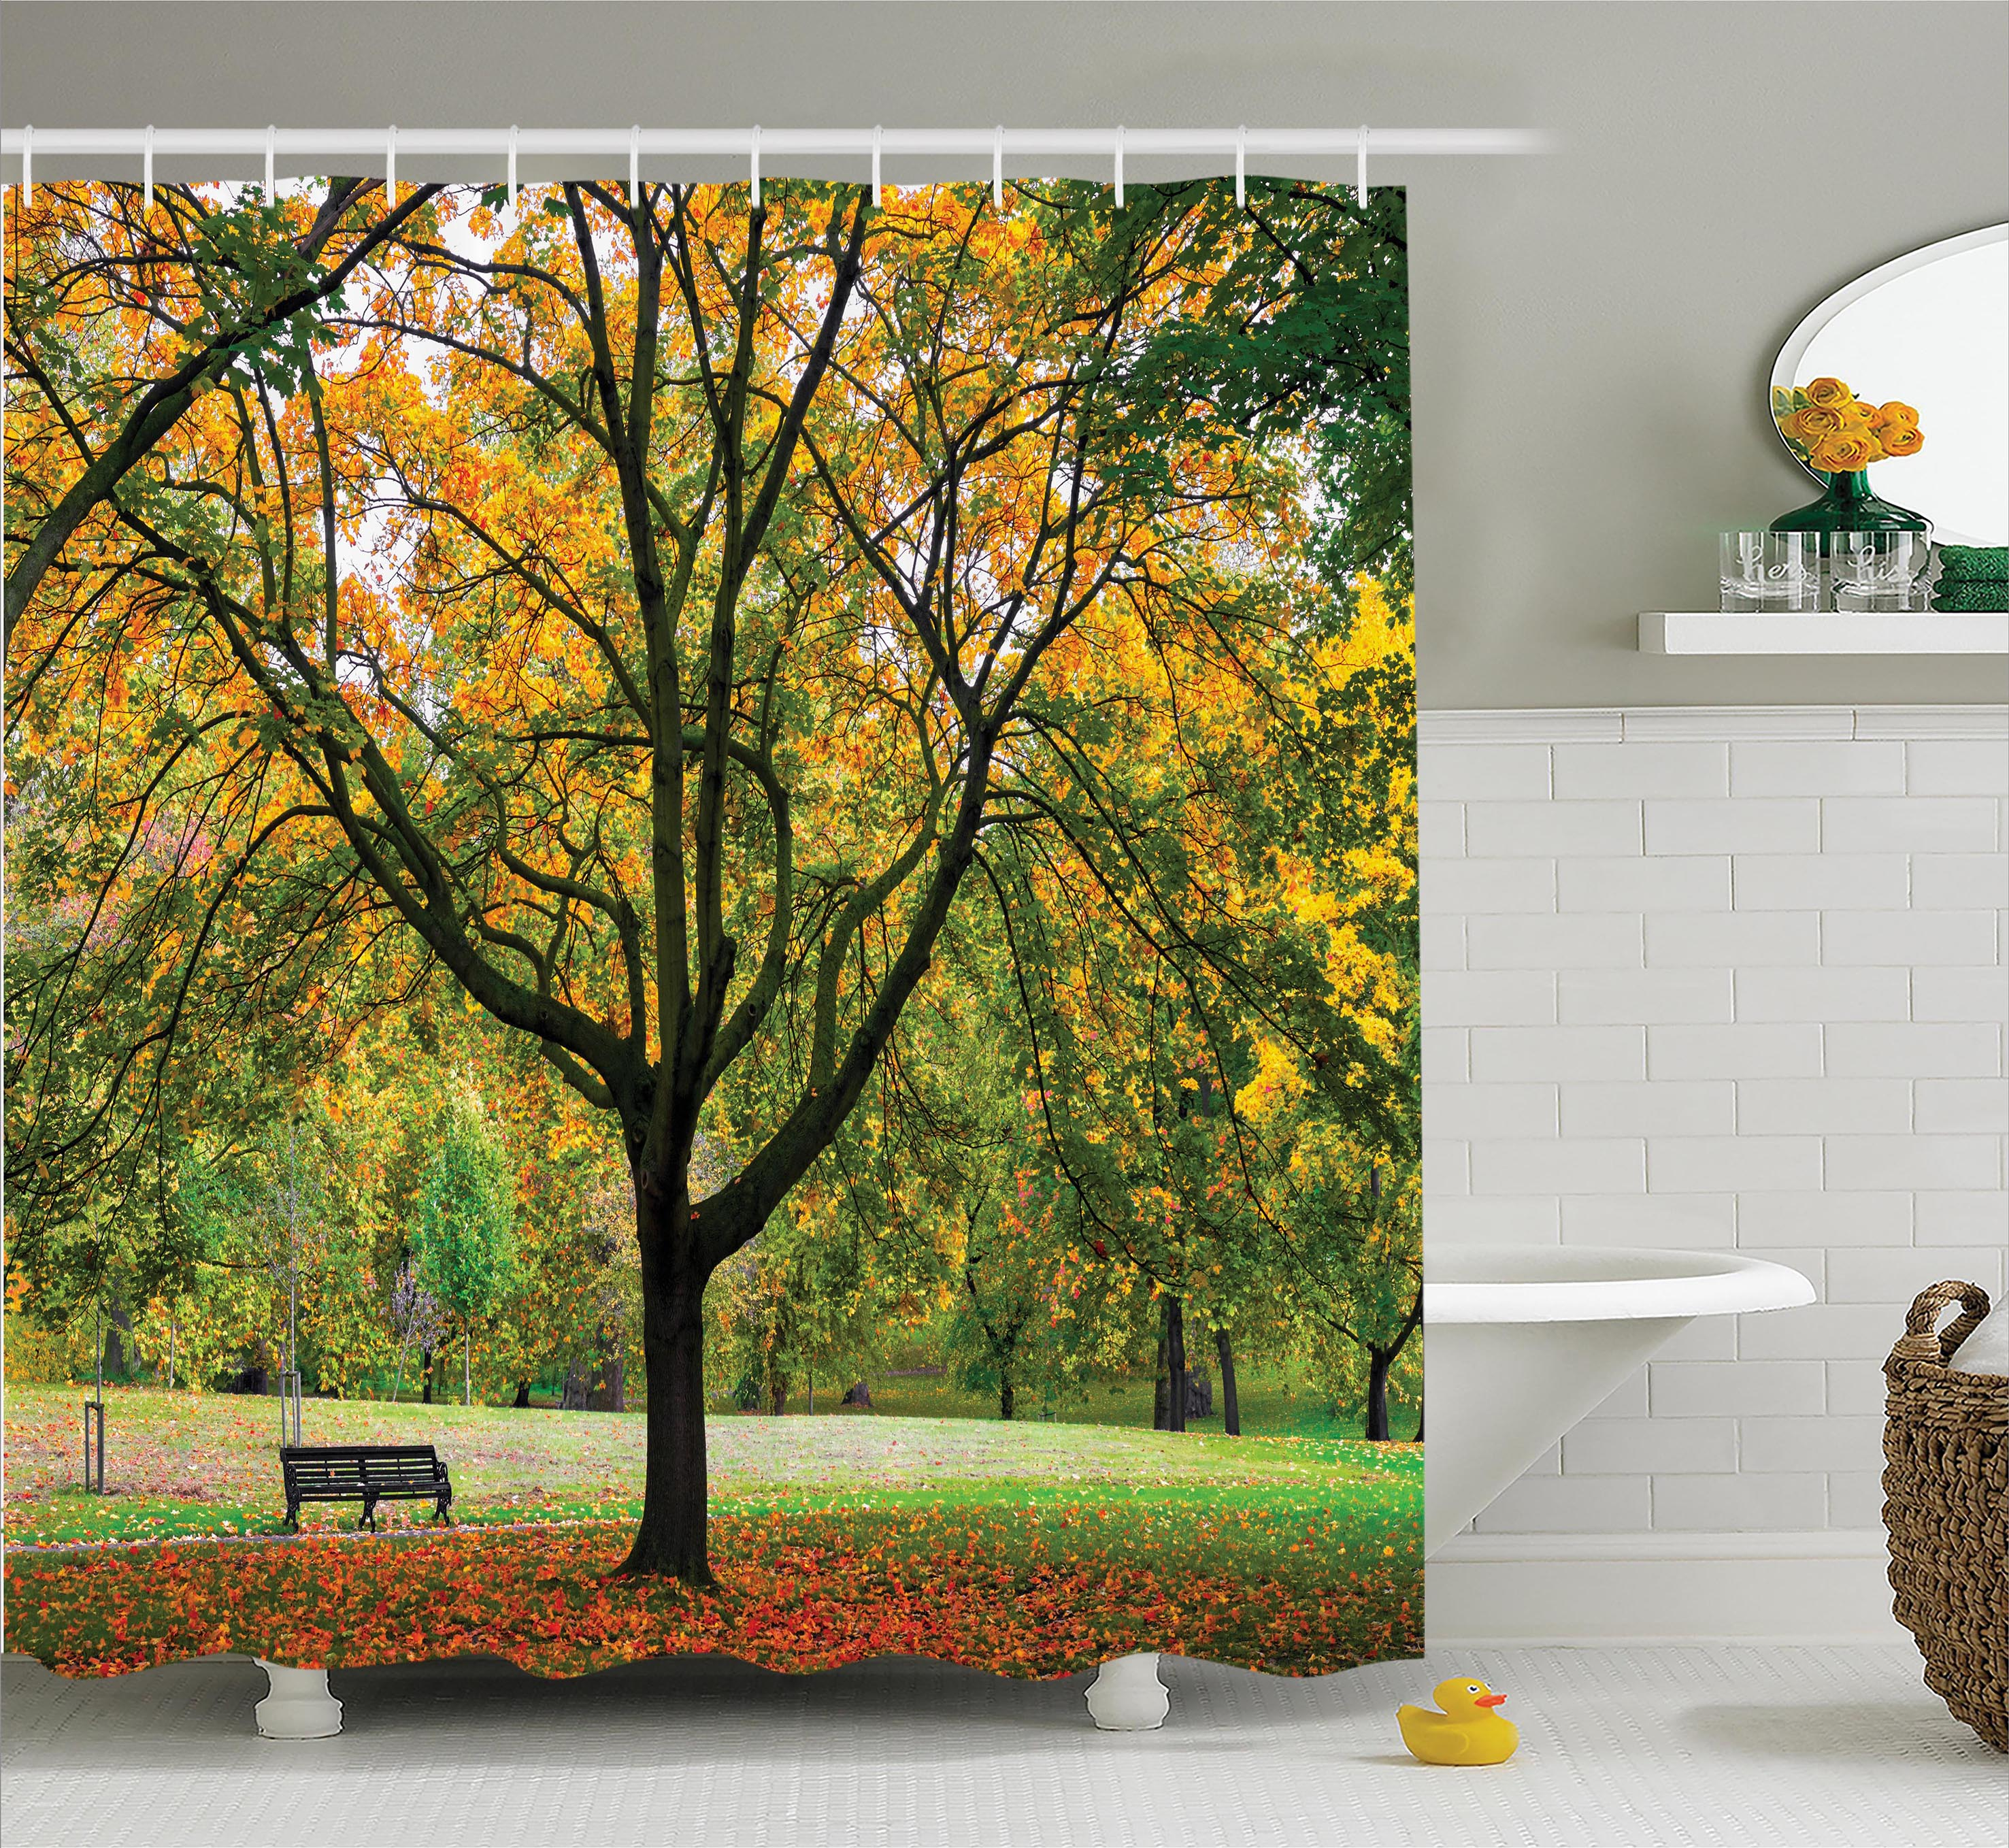 Farm House Decor Shower Curtain, Season Year in the Park Dead Leaves Autumn to Winter Seasonal Picture, Fabric Bathroom Set with Hooks, 69W X 75L Inches Long, Green Yellow, by Ambesonne